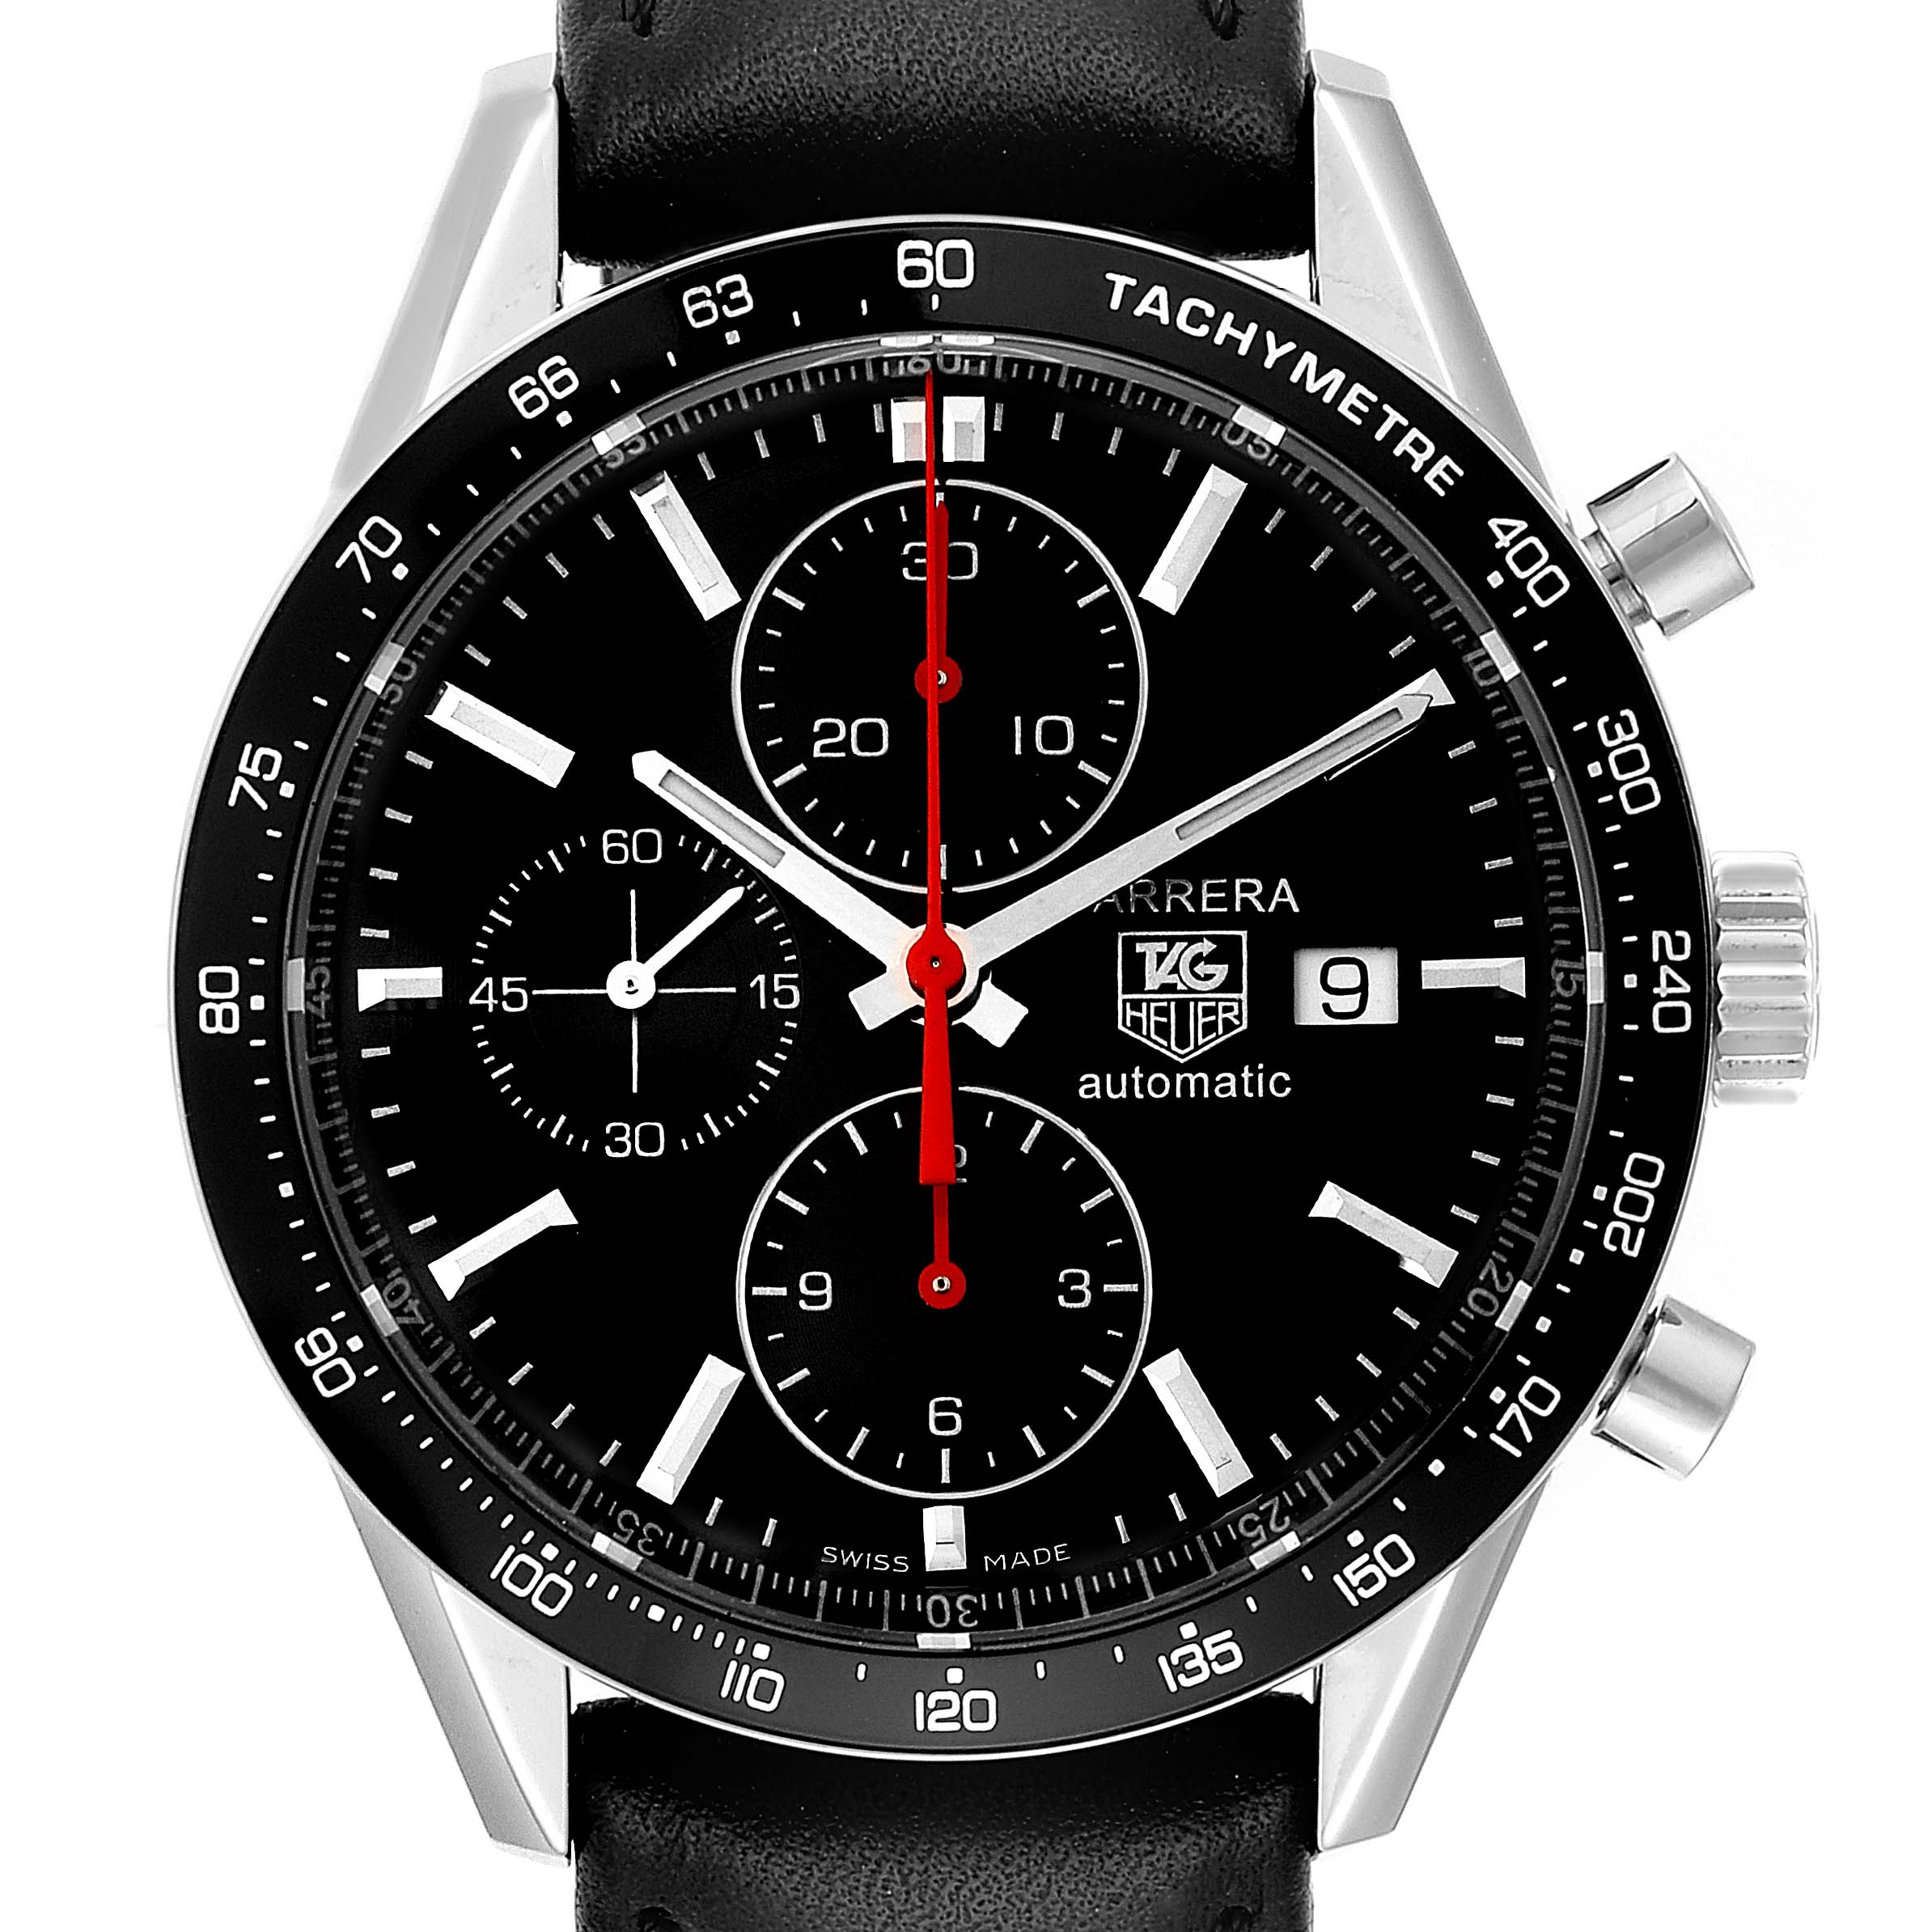 Photo of Tag Heuer Carrera Black Dial Chronograph Mens Watch CV2014